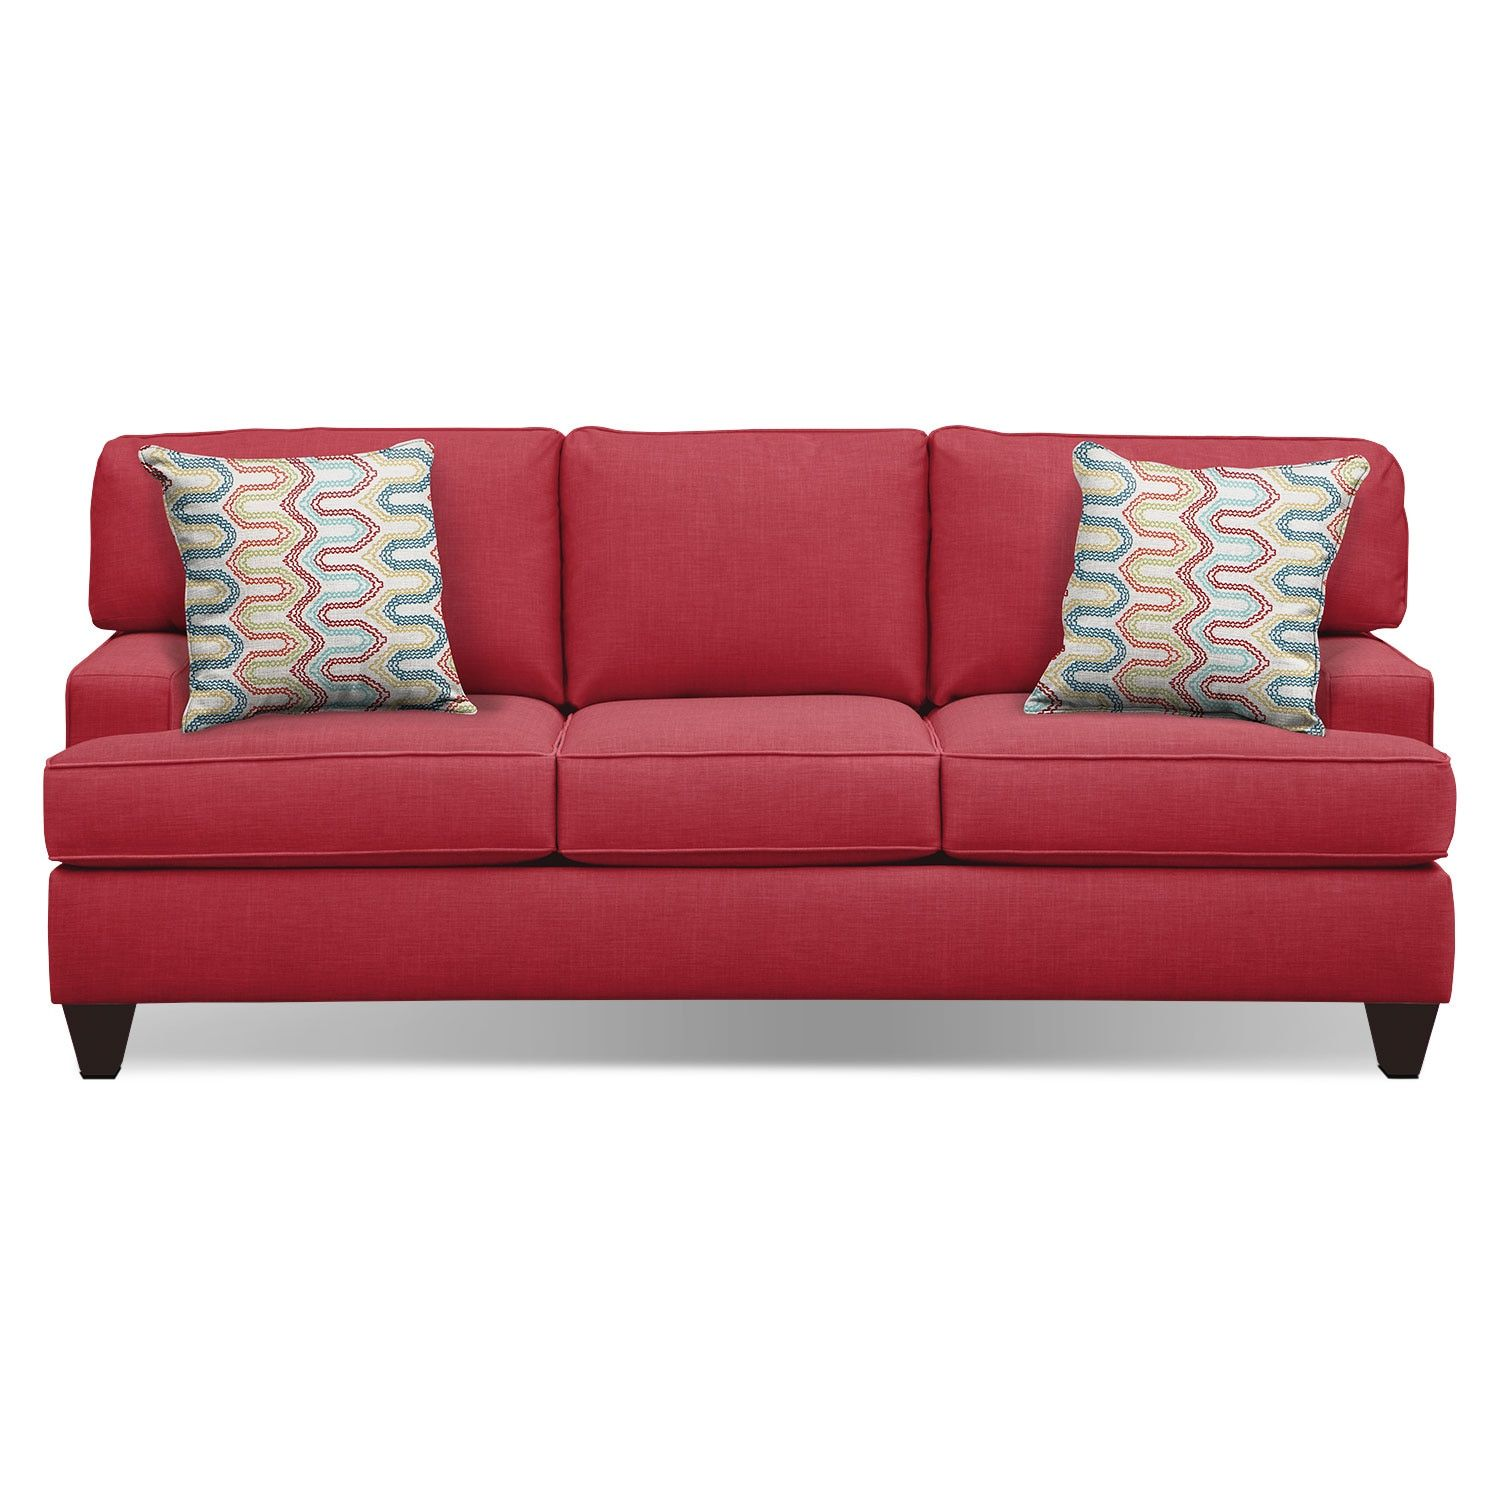 Best Conner Red 87 Sofa In 2019 Furniture Sofa Living Room 400 x 300